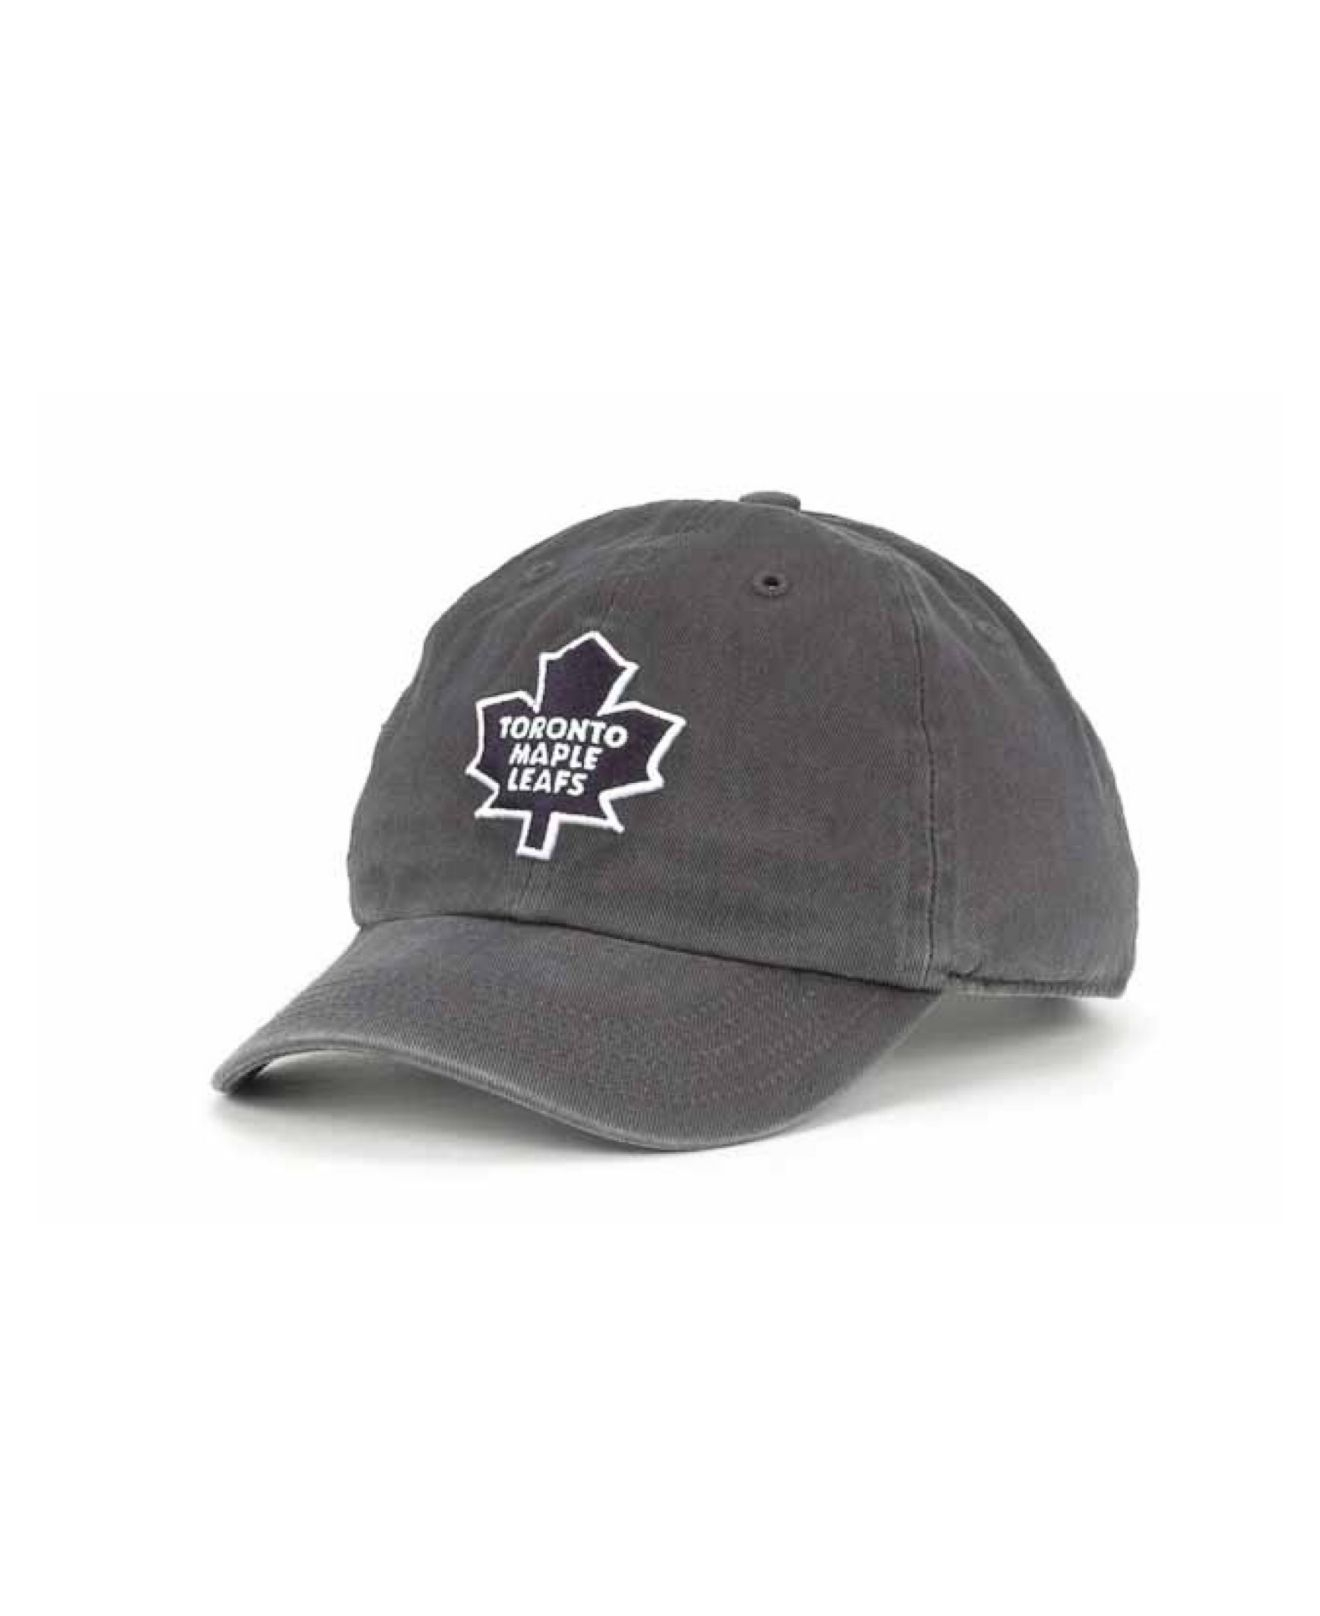 Lyst - 47 Brand Kids  Toronto Maple Leafs Clean-up Cap in Blue for Men c652658d8470